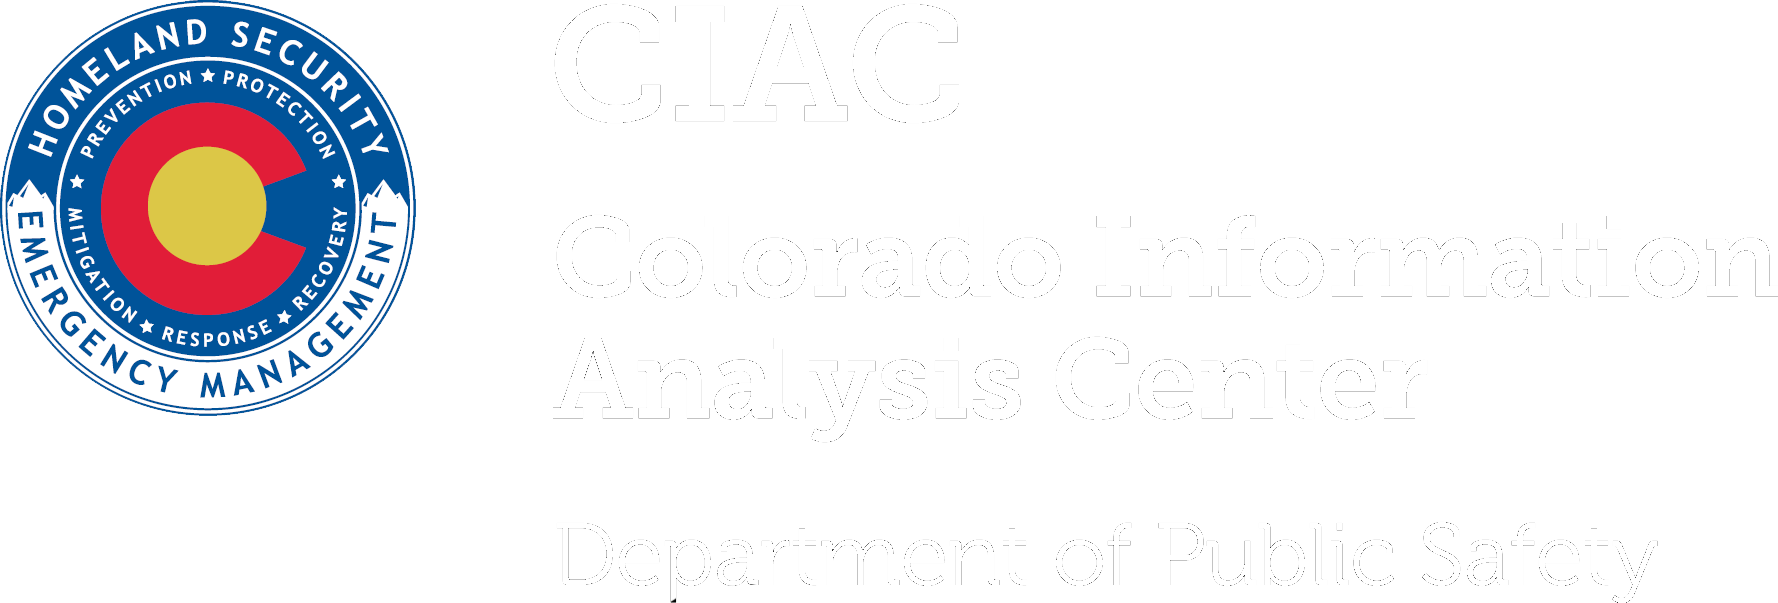 Colorado Information Analysis Center (CIAC) - Logo